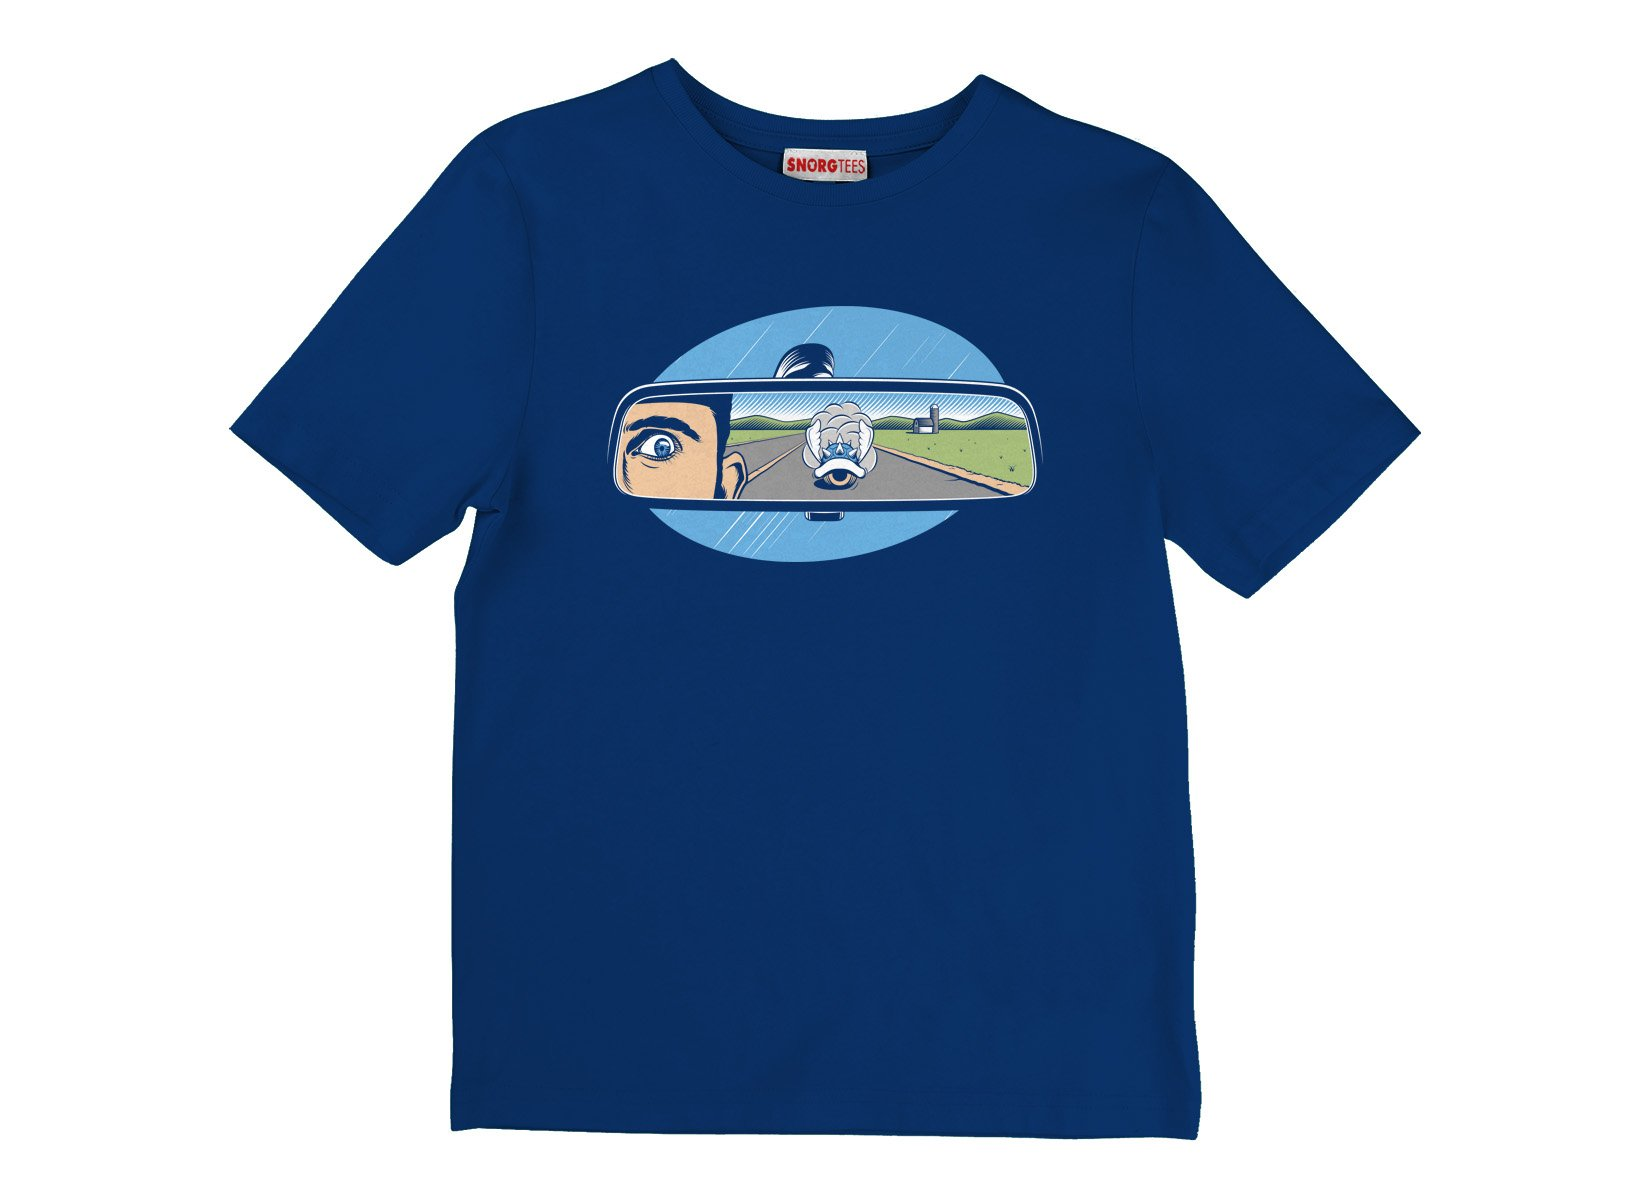 Incoming Turtle Shell on Kids T-Shirt